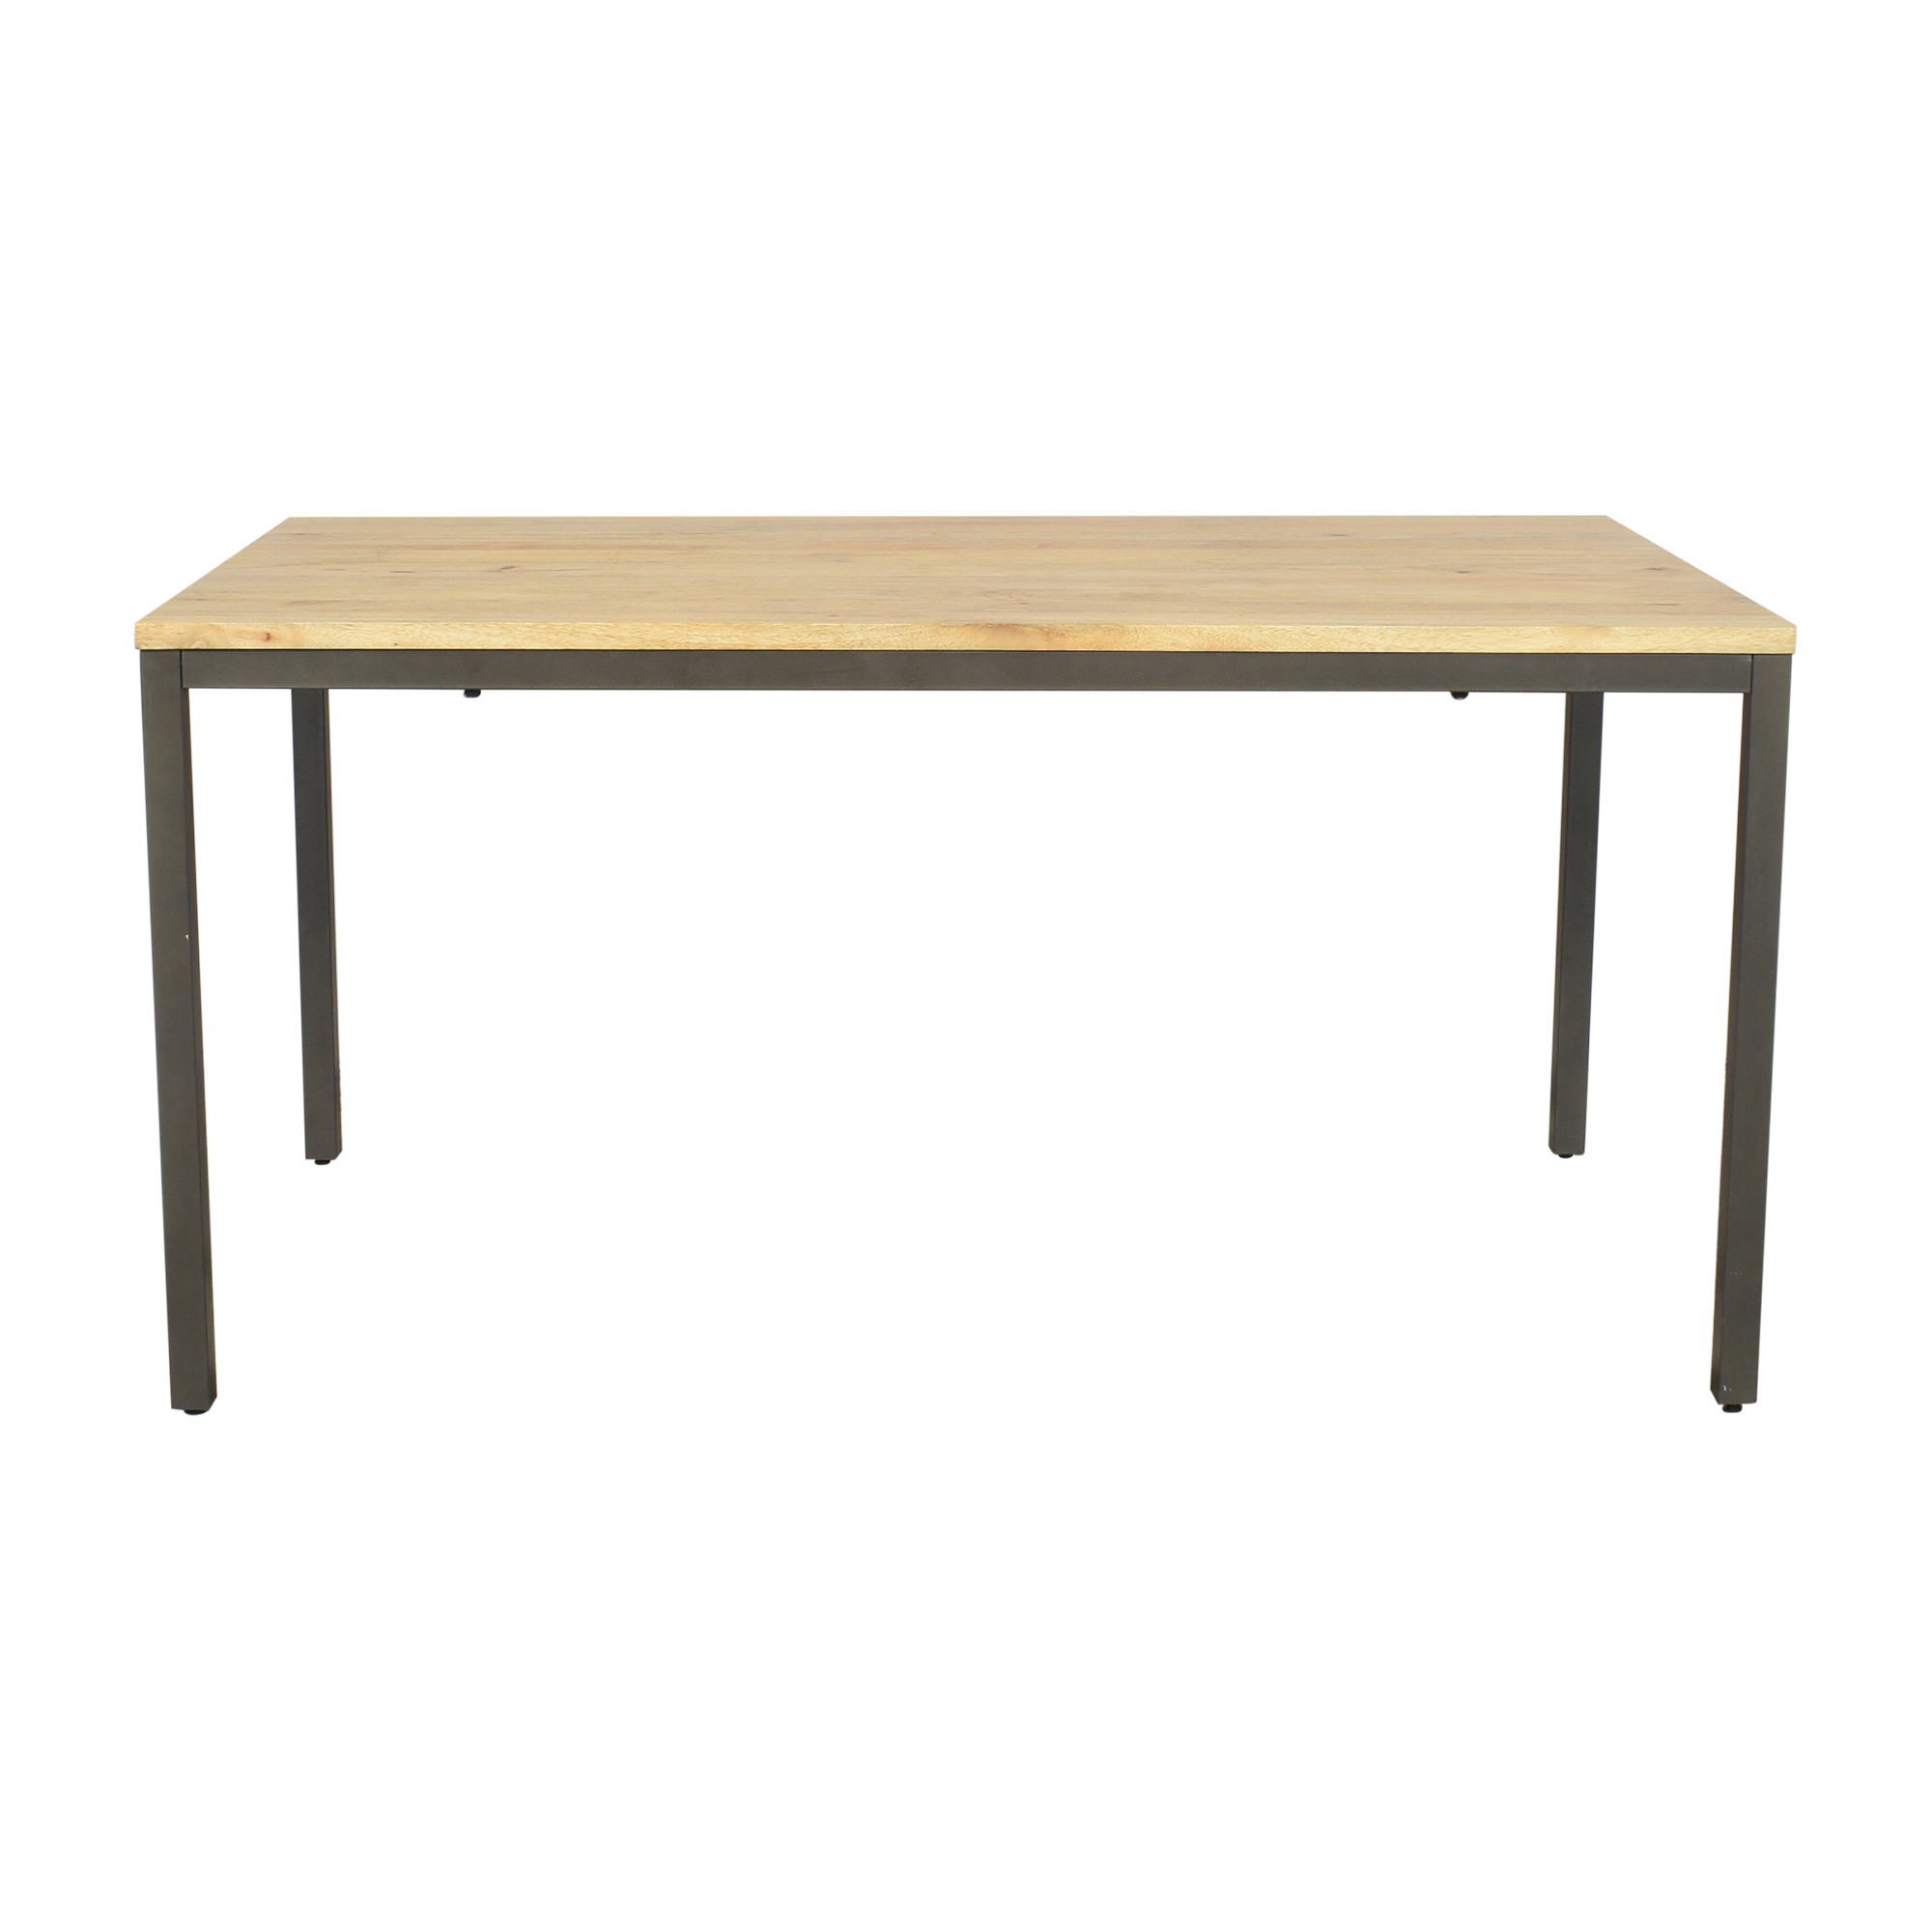 West Elm West Elm Box Frame Dining Table coupon